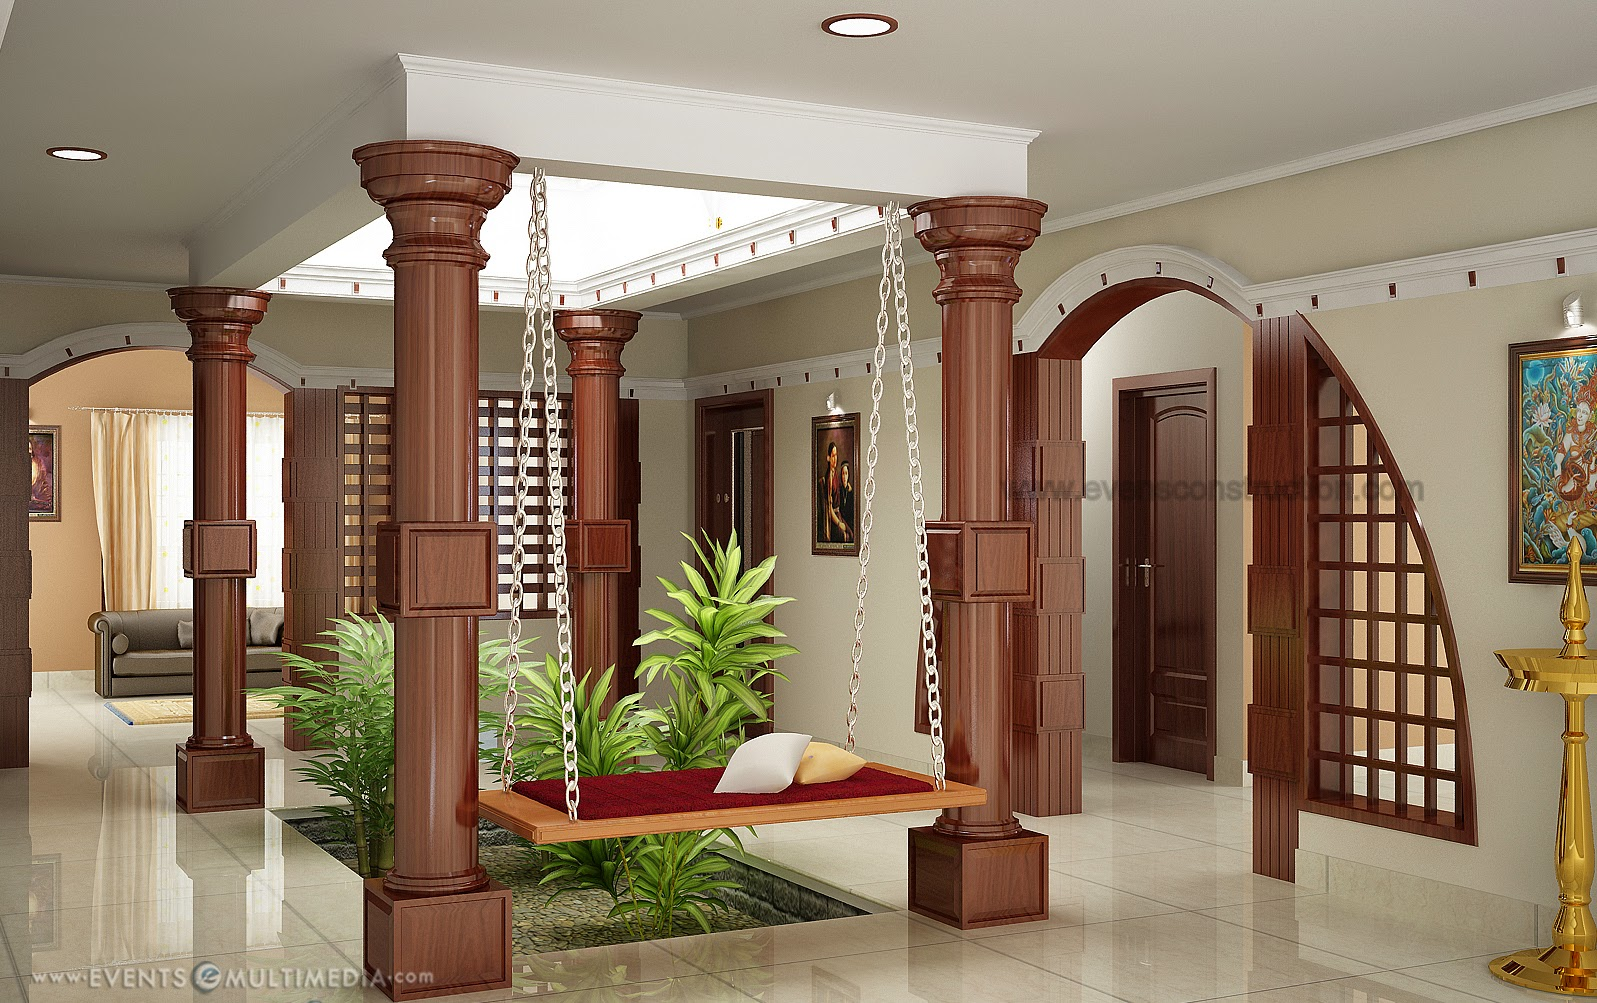 Evens construction pvt ltd courtyard for kerala house for Interior courtyard designs ideas